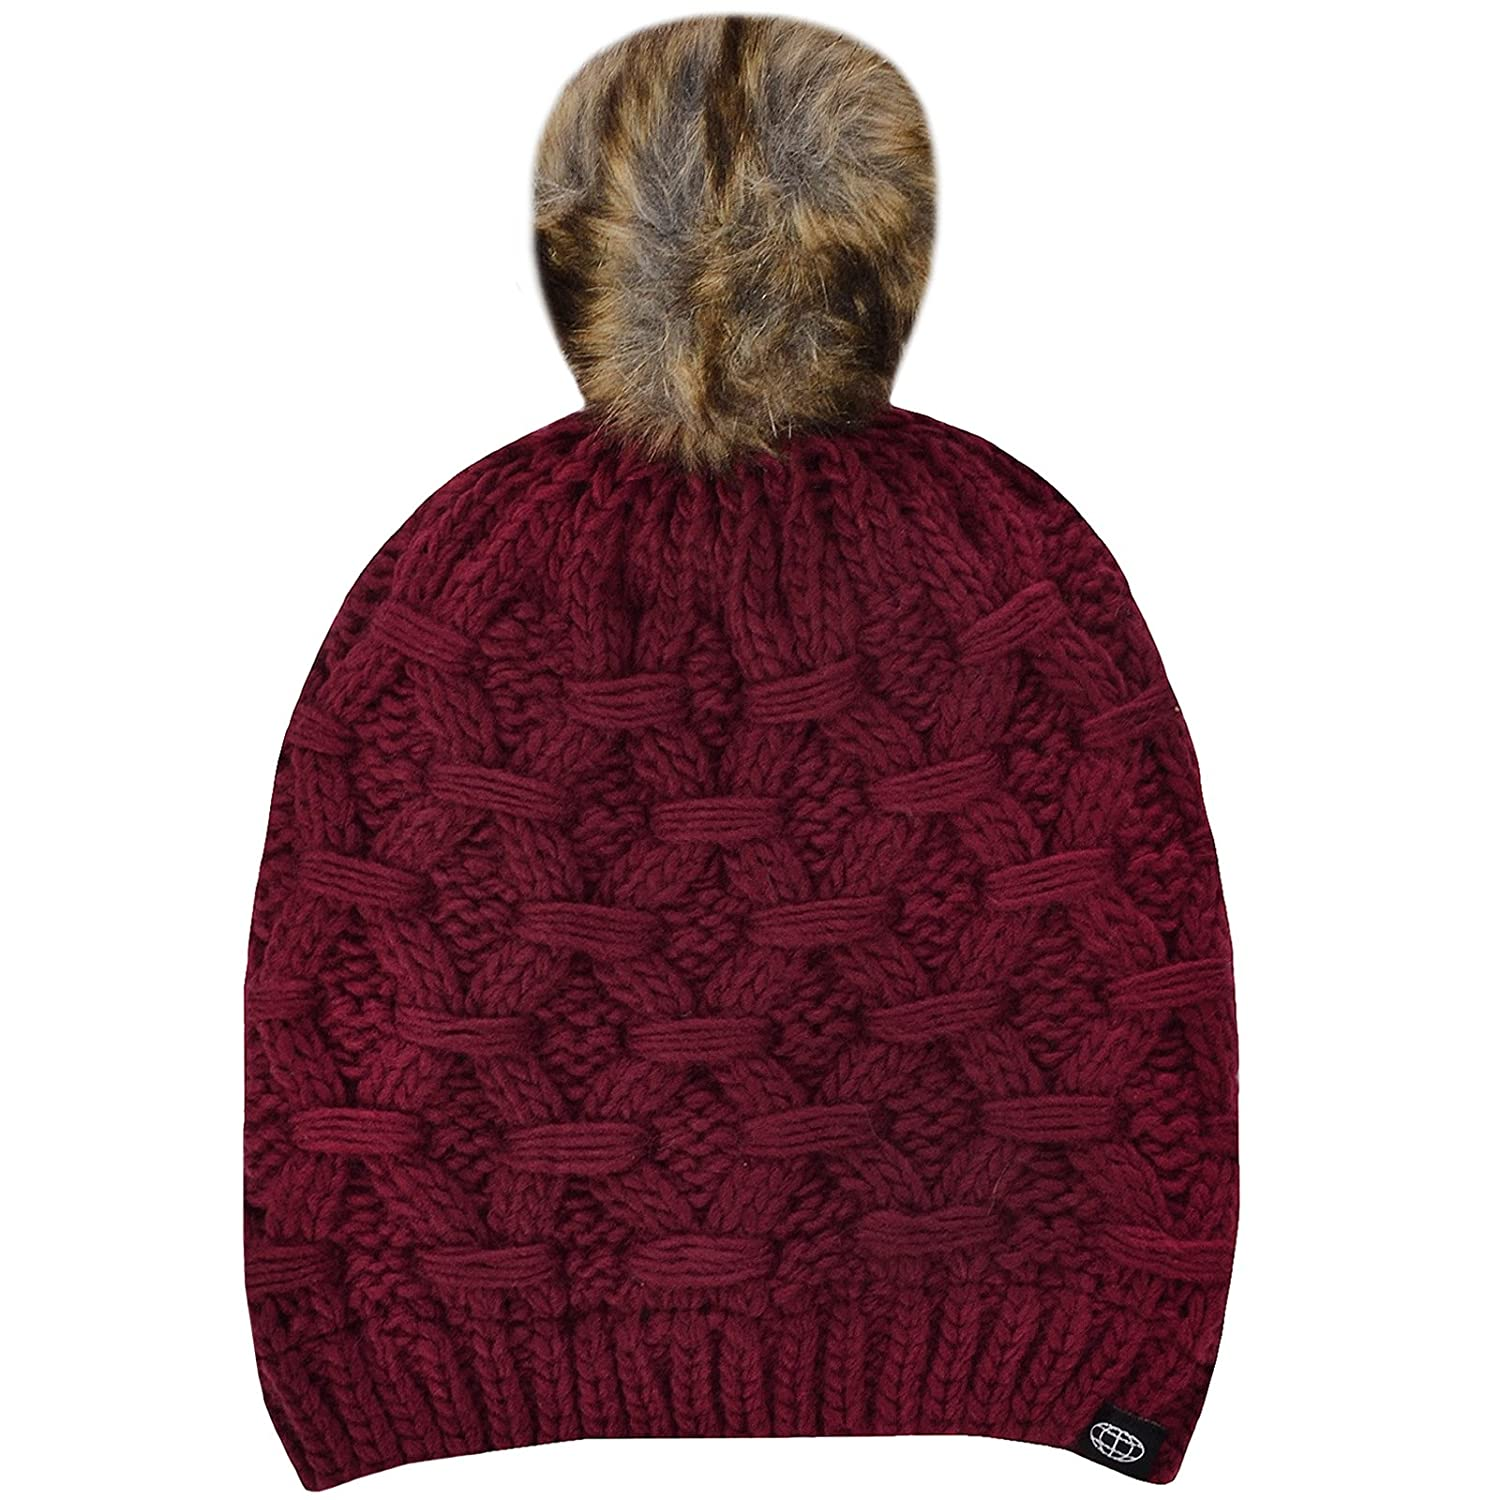 7b23a0743 ProClimate Womens Thinsulate Waterproof Knitted Bobble Hat - Claret ...